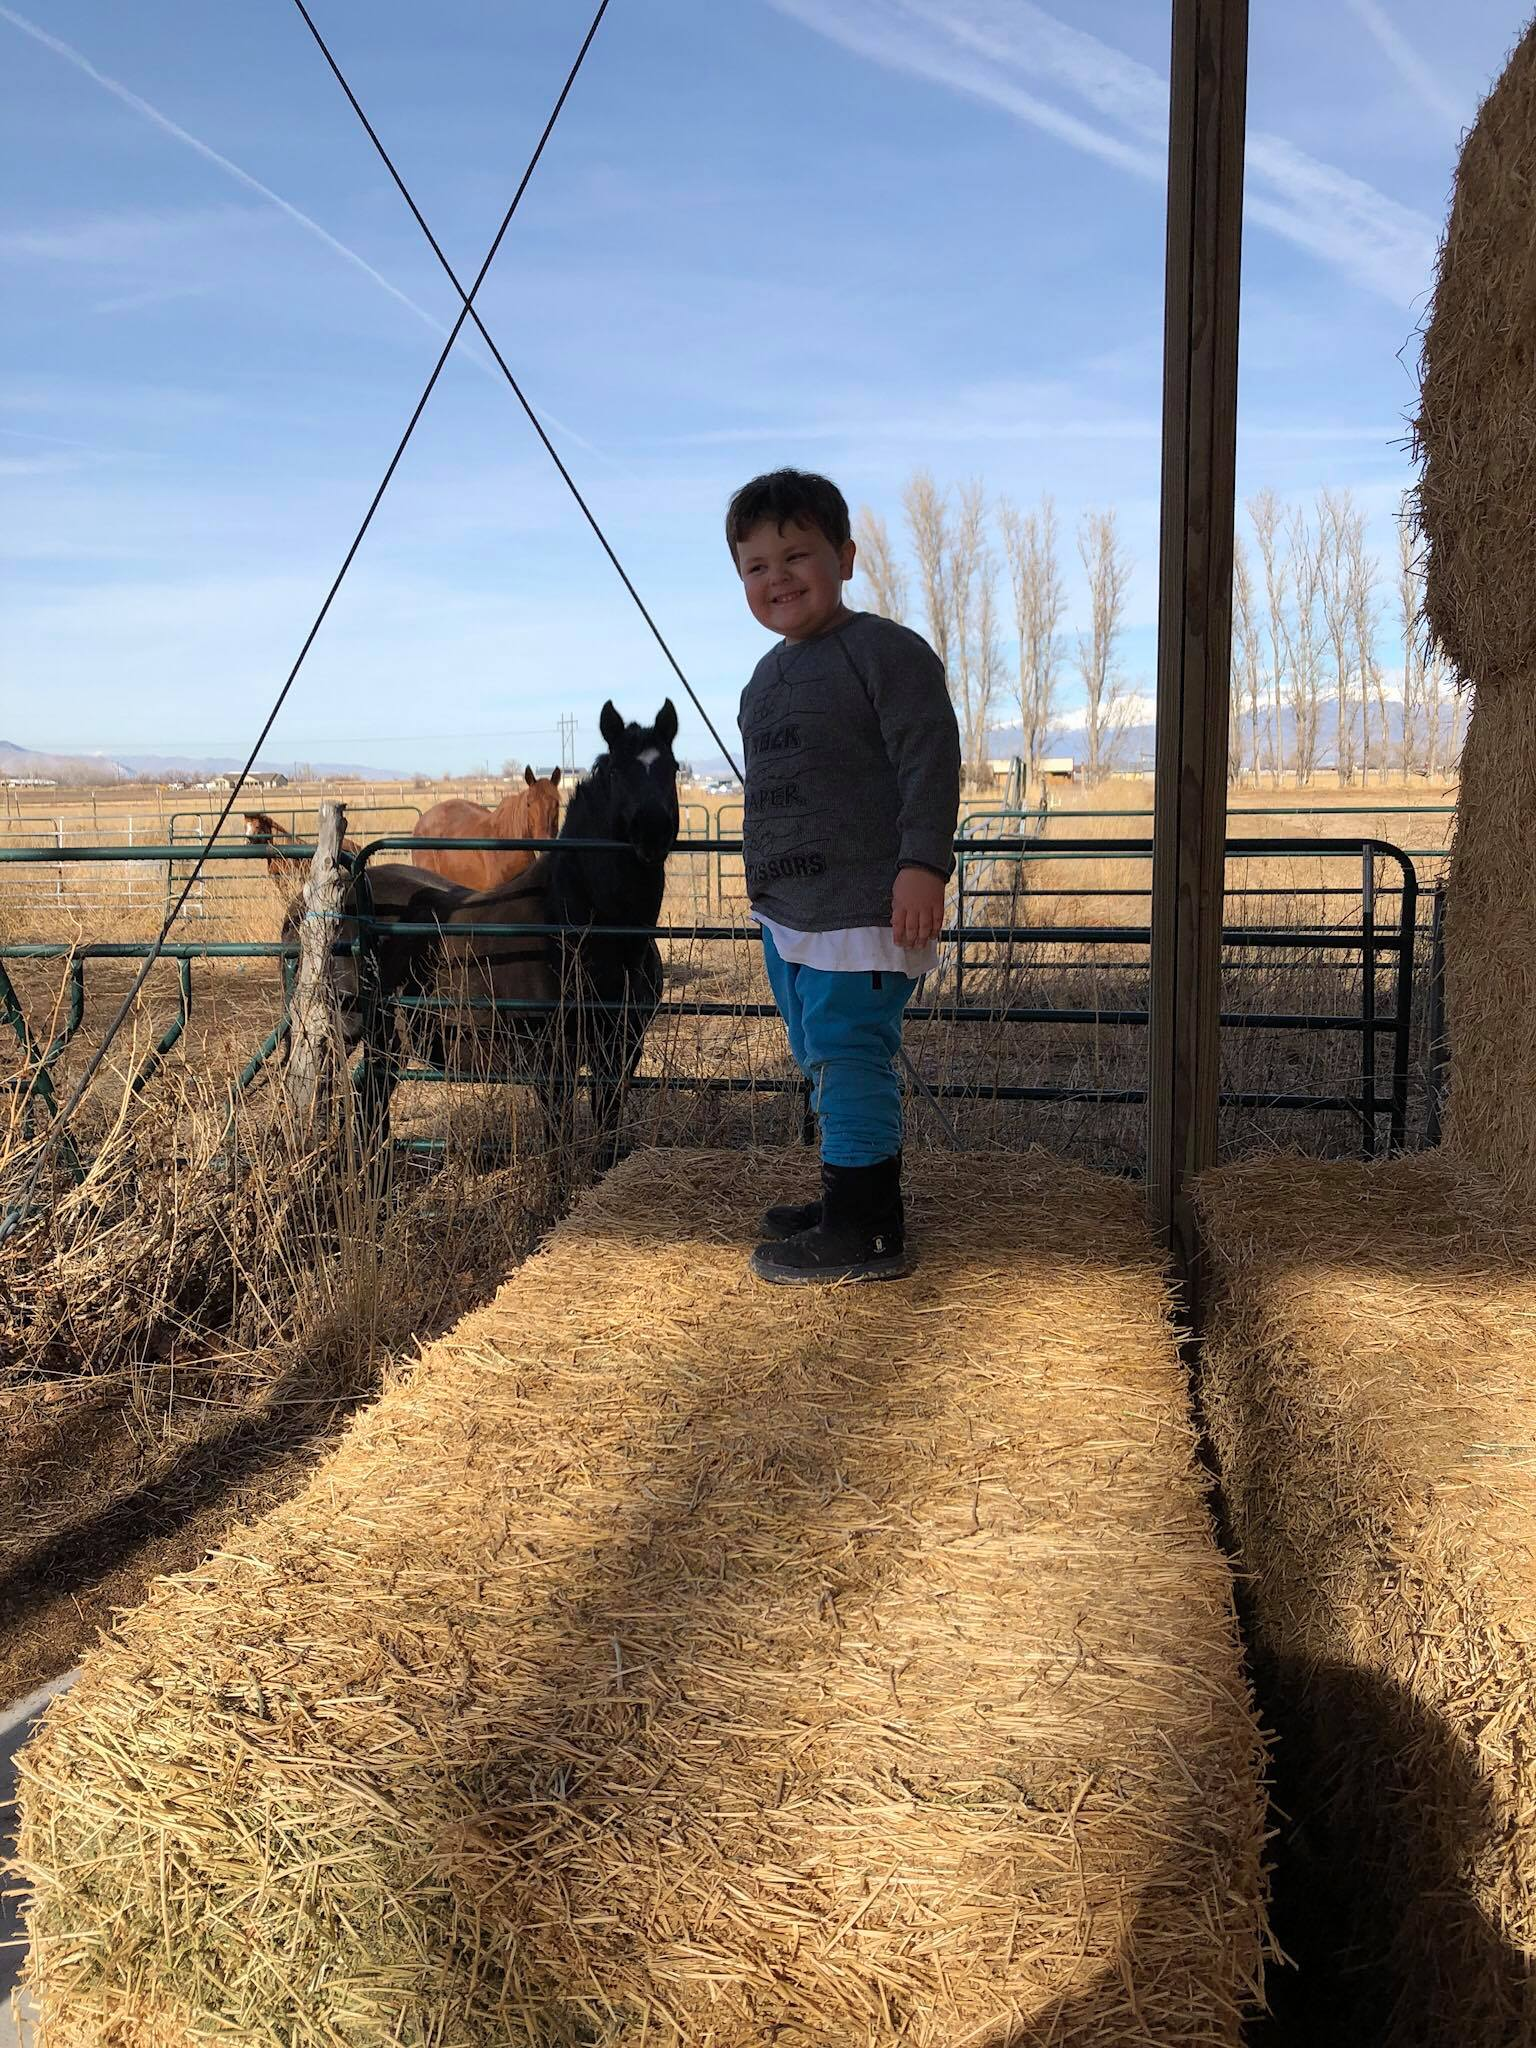 S, 5 years old, standing on top of a hay bale while horses look on in the background